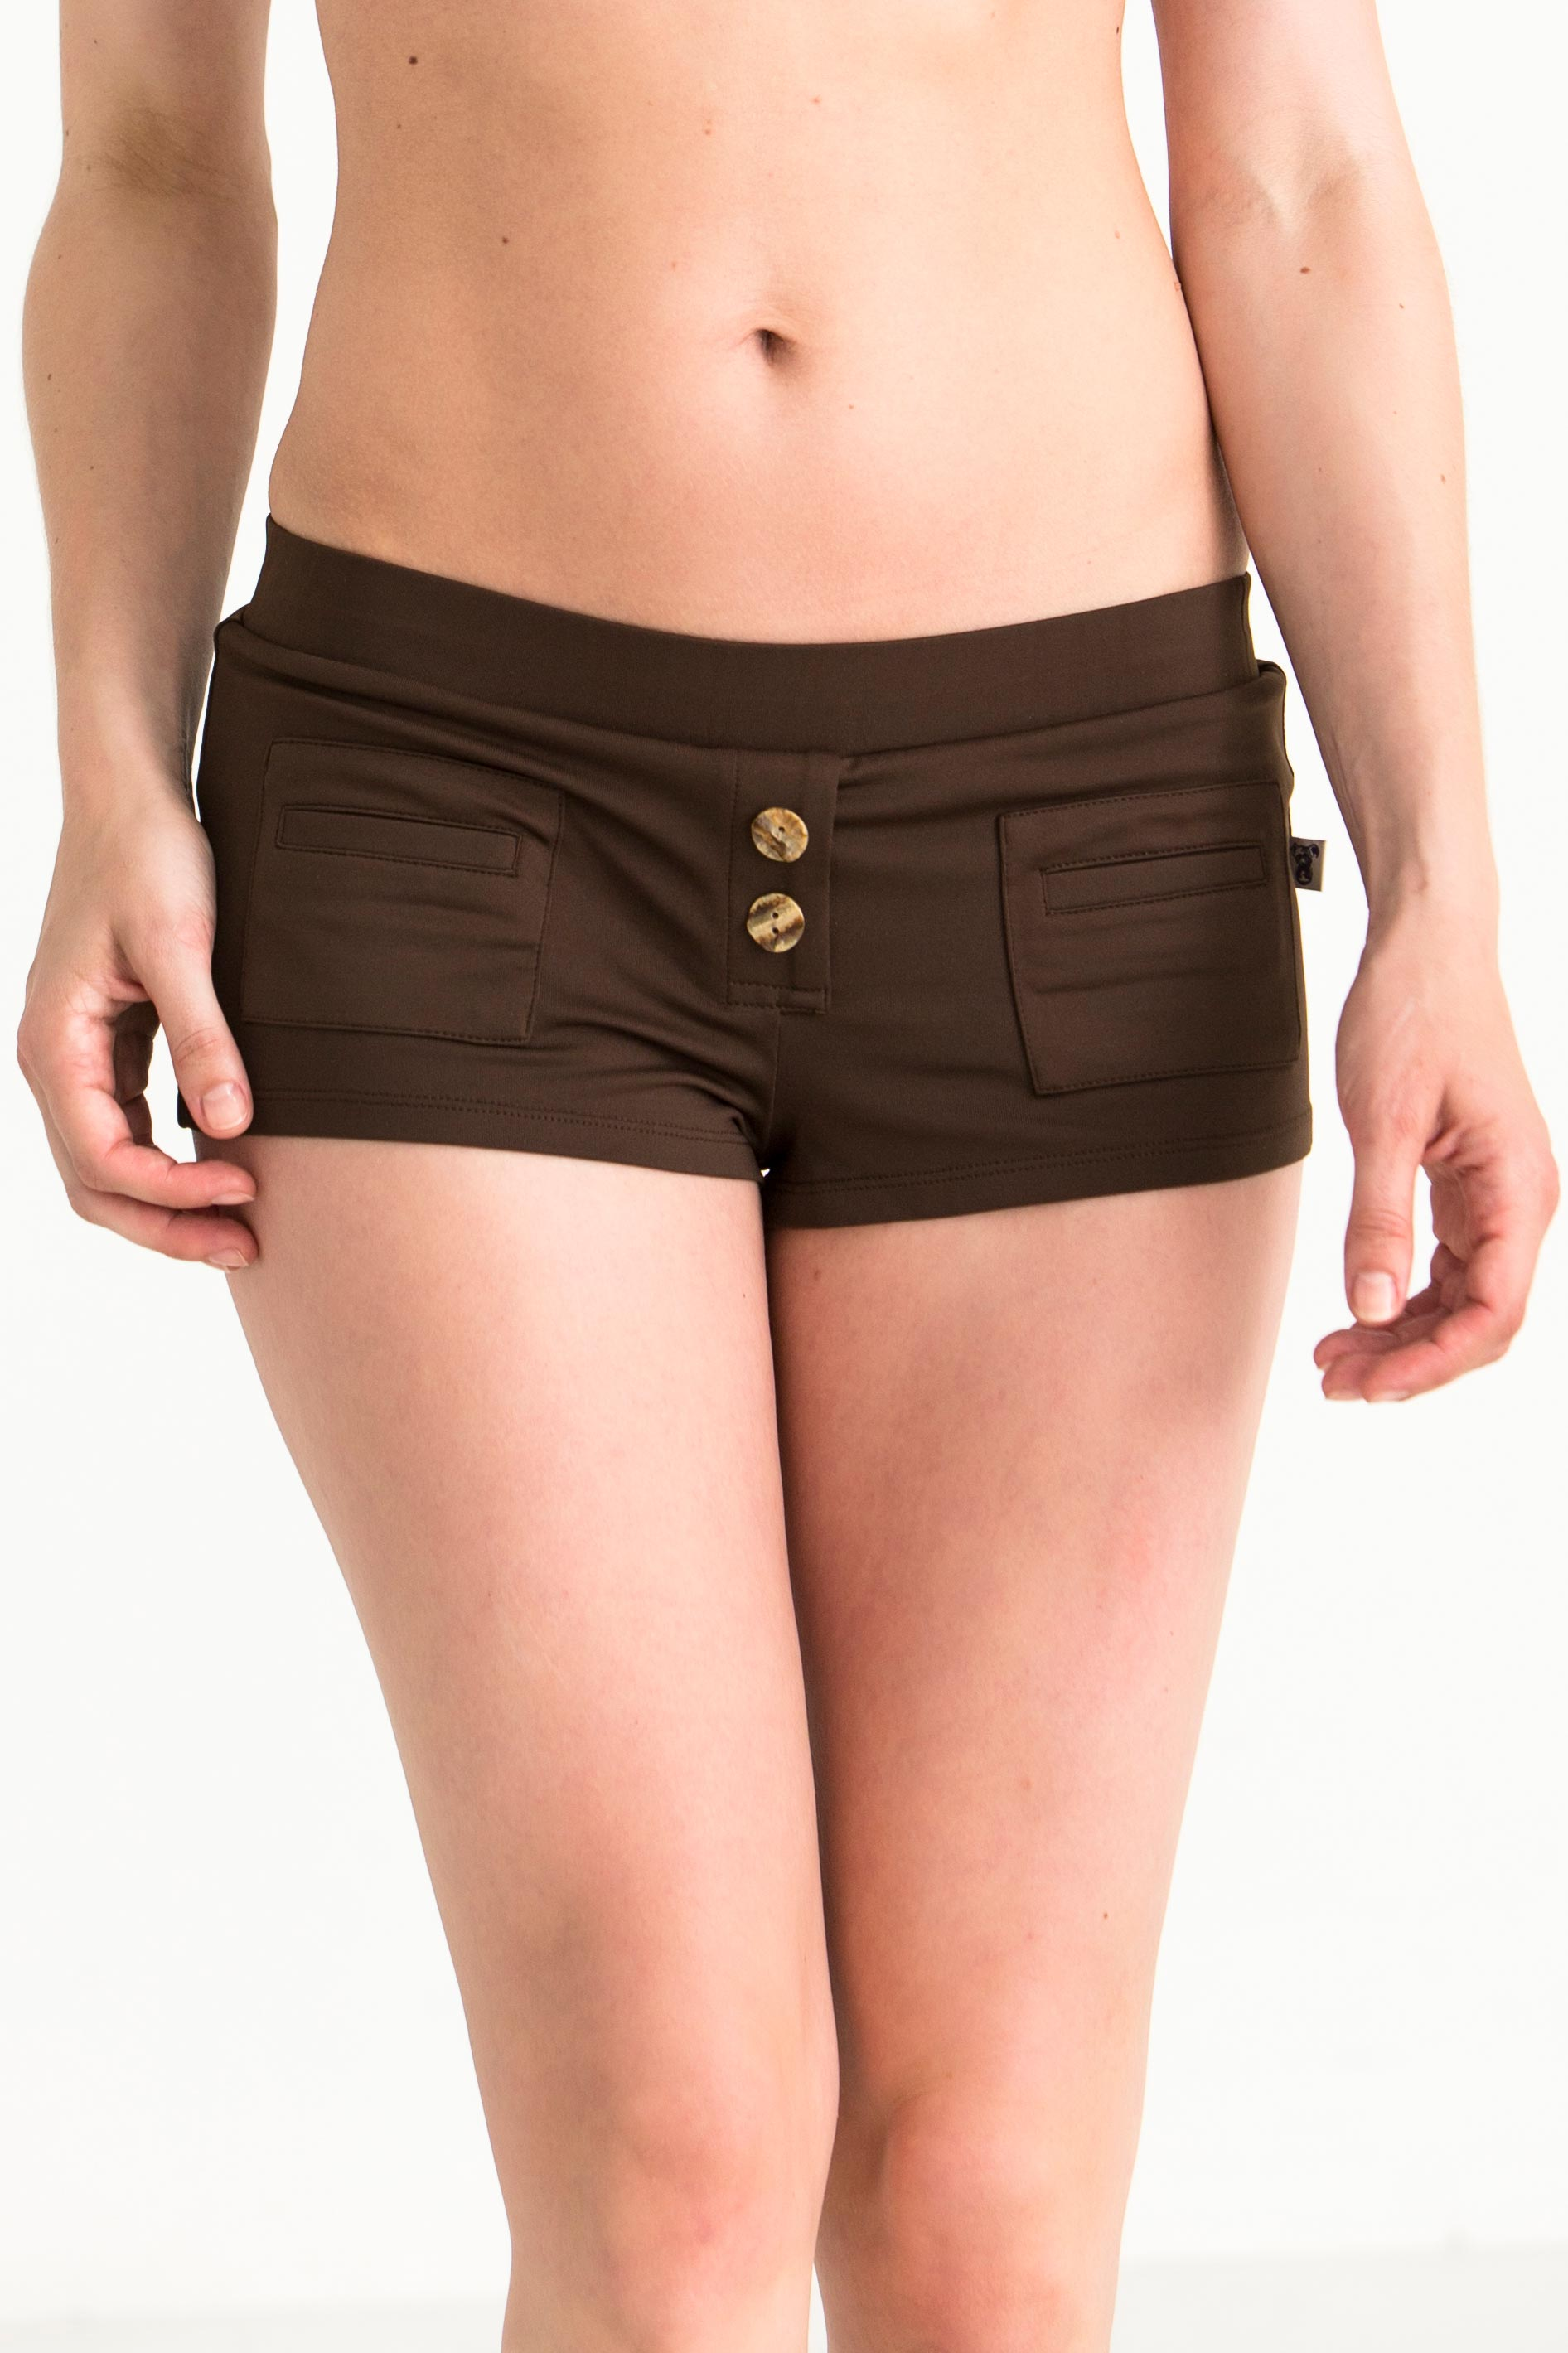 bib-bottom-short-pockets-daniela-choco1